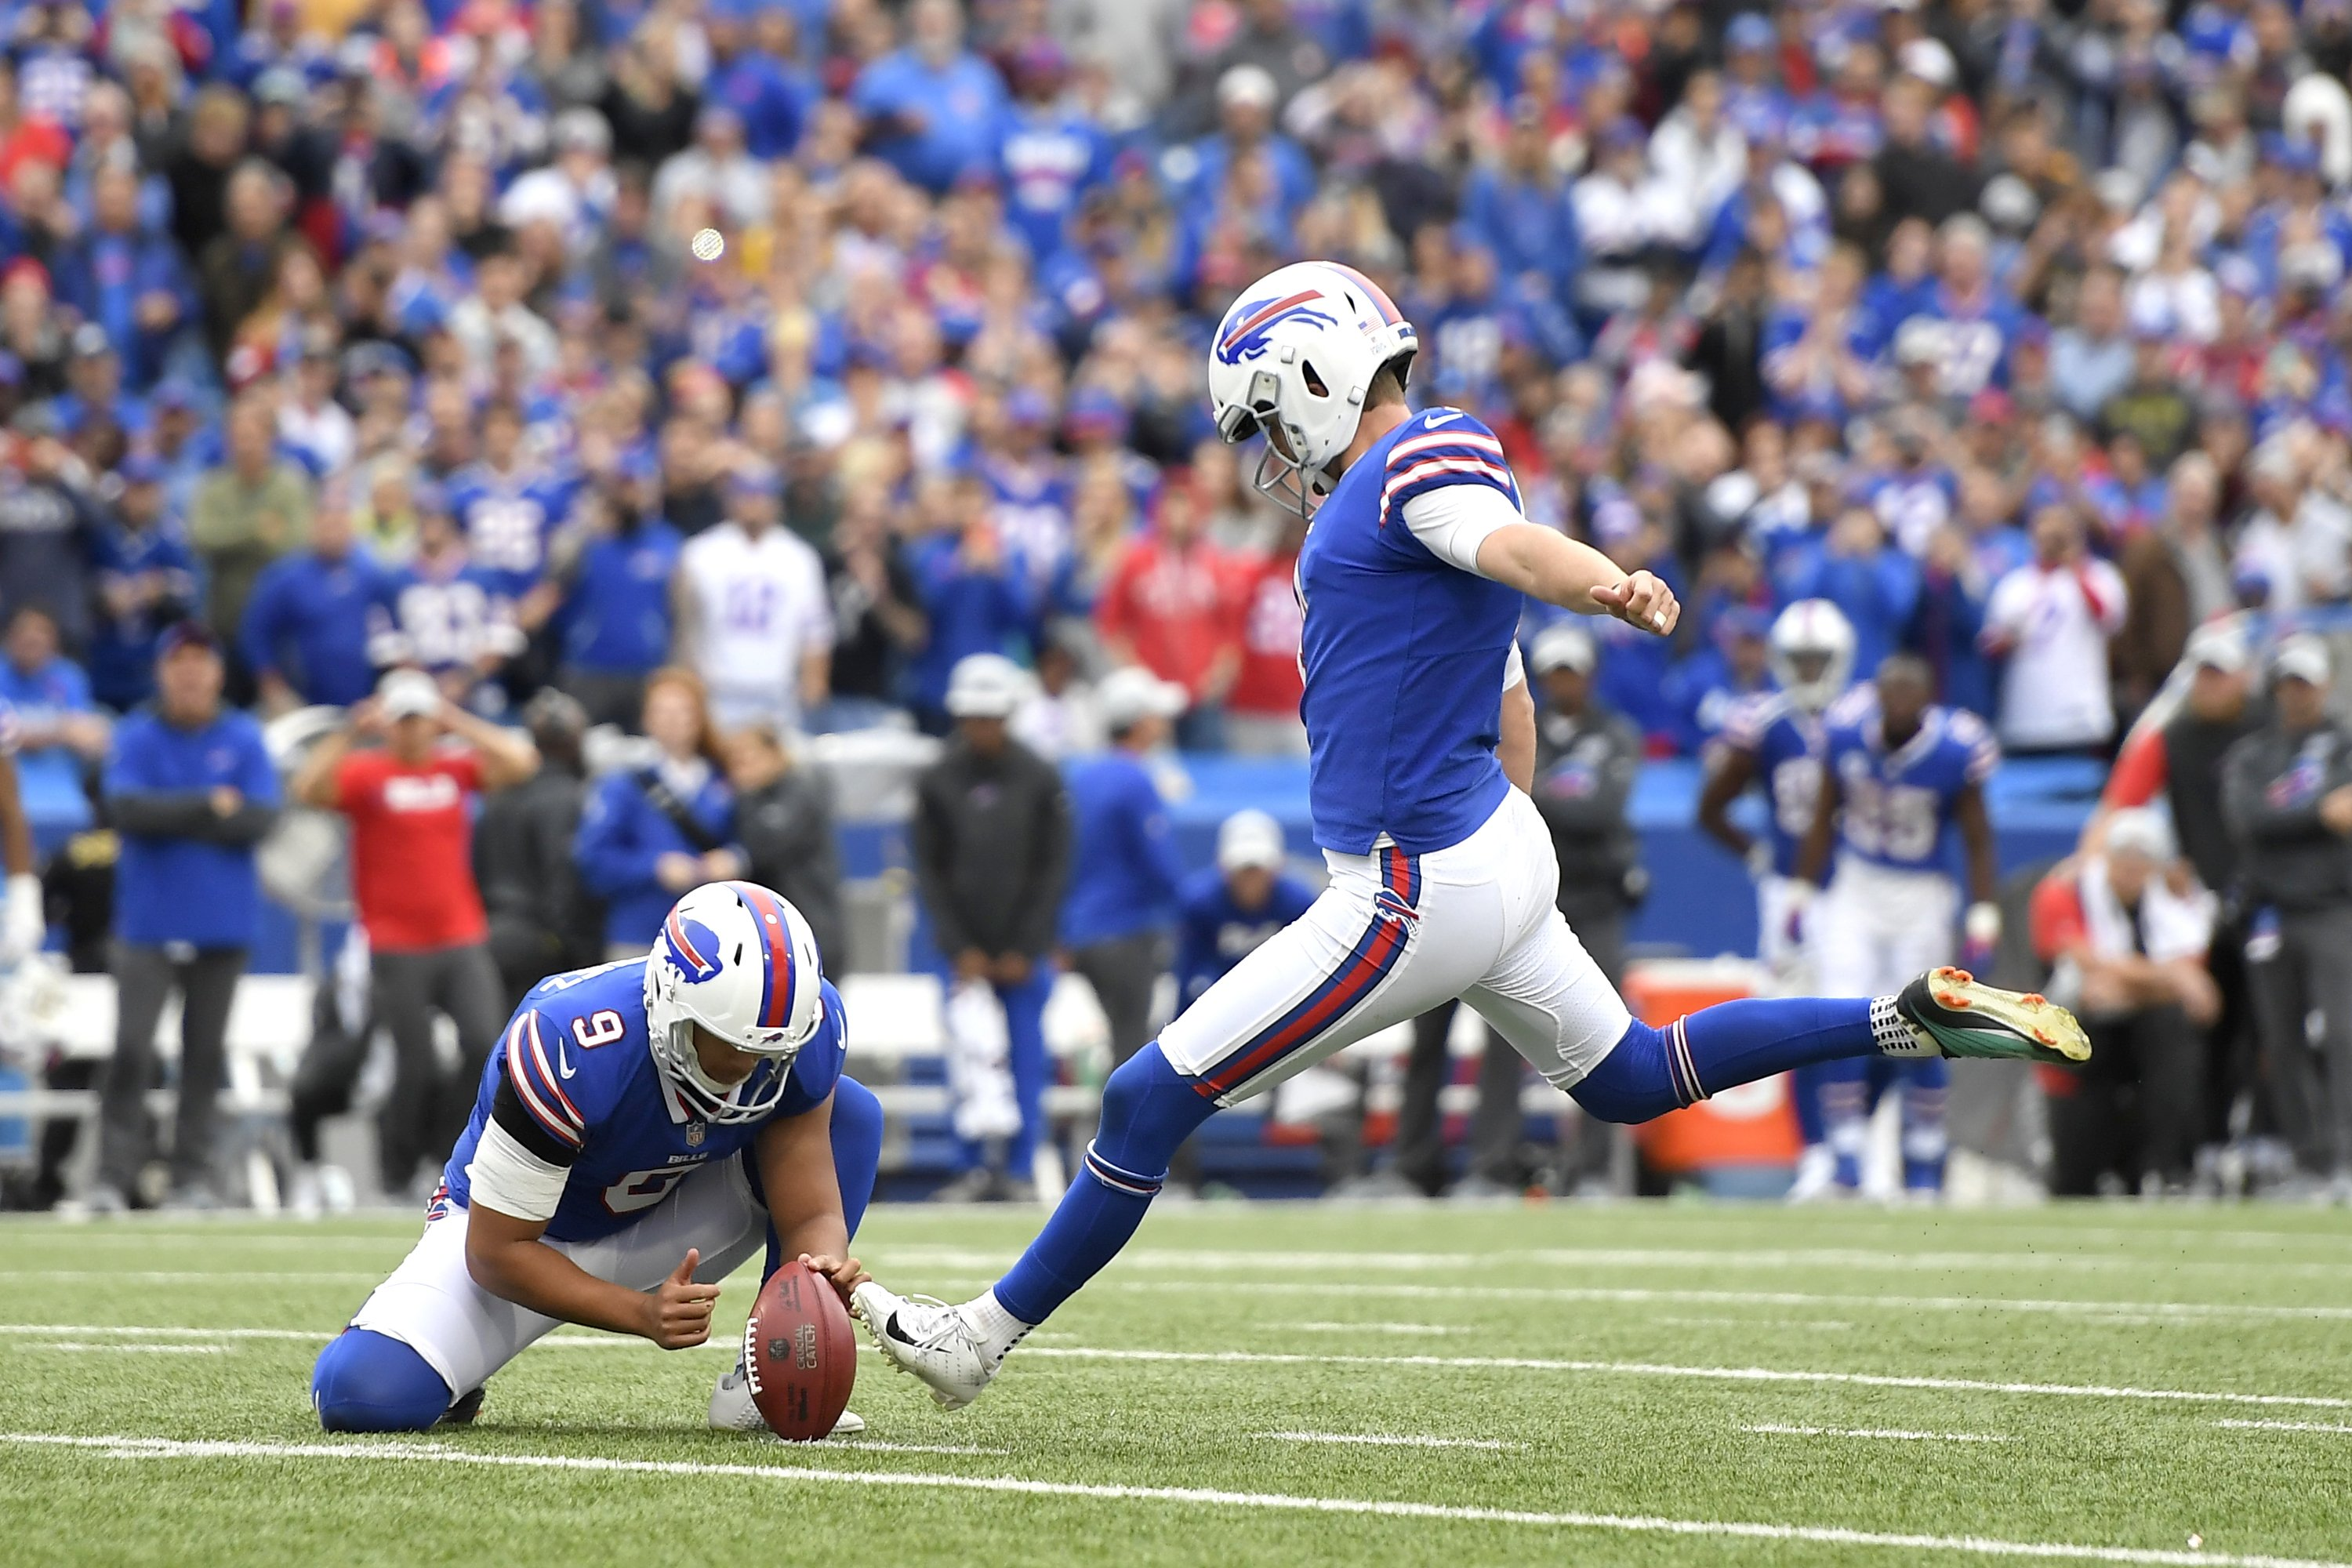 Heroes and villains among NFL placekickers in Week 5